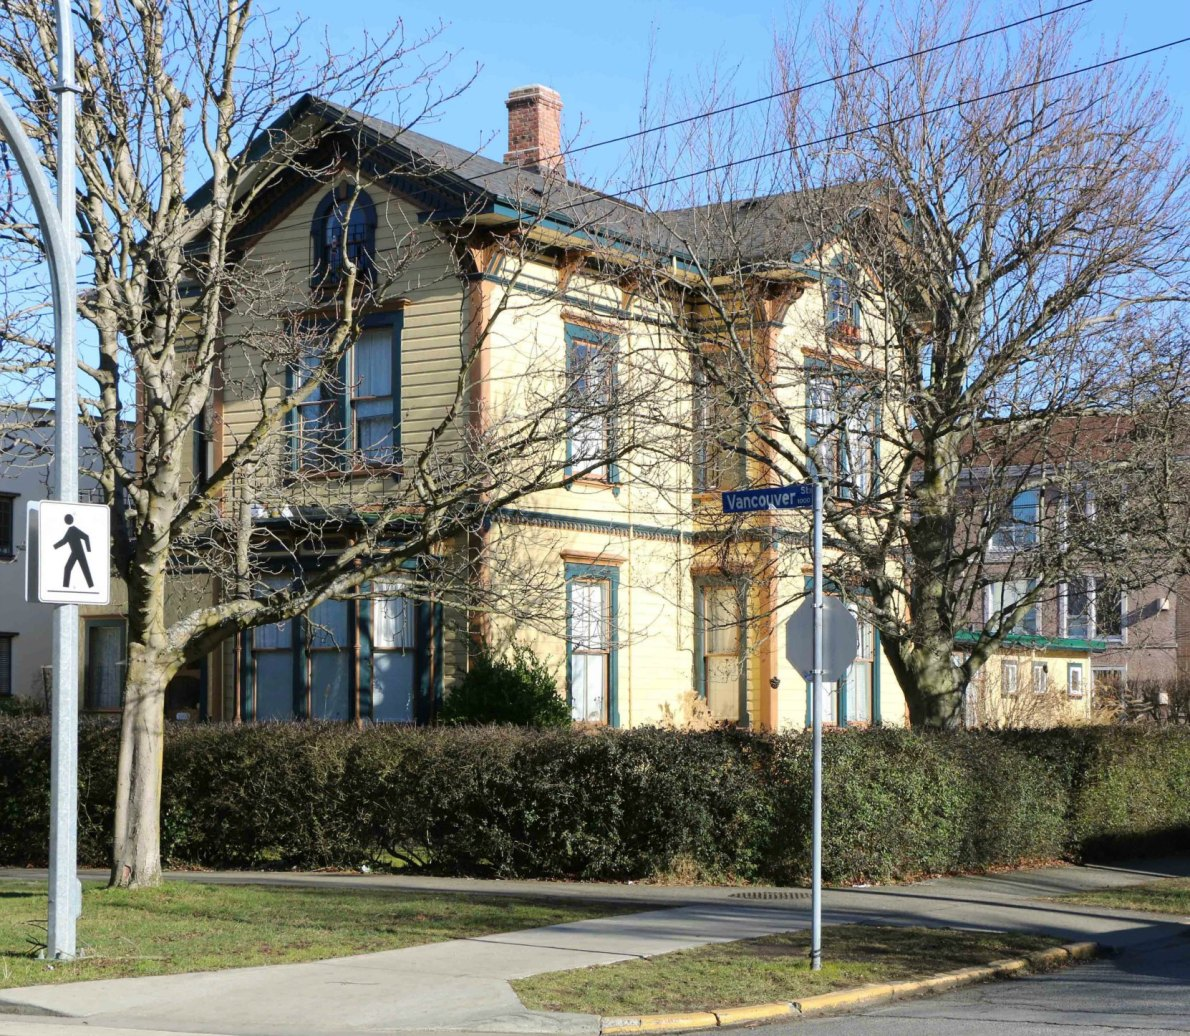 1003 Vancouver Street, built in 1885 by architect John Teague for Charles Hayward, a former Mayor of Victoria. It is now apartments. (photo: Victoria Online Sightseeing Tours)